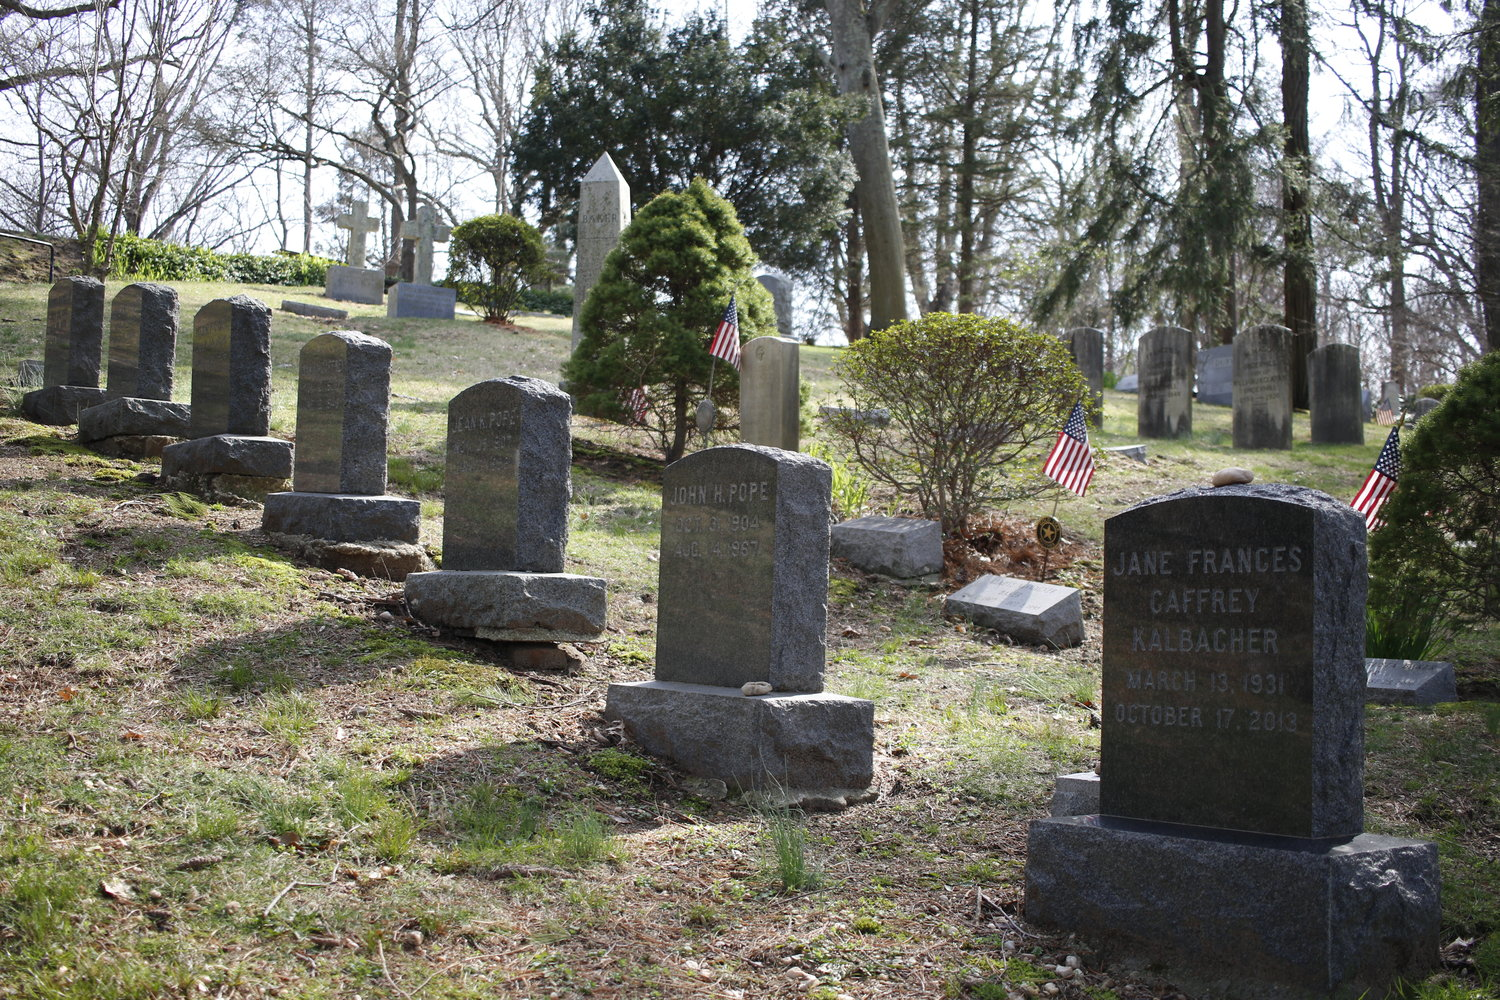 Cemeteries do not have uniform rules when it comes to burials during the coronavirus pandemic.